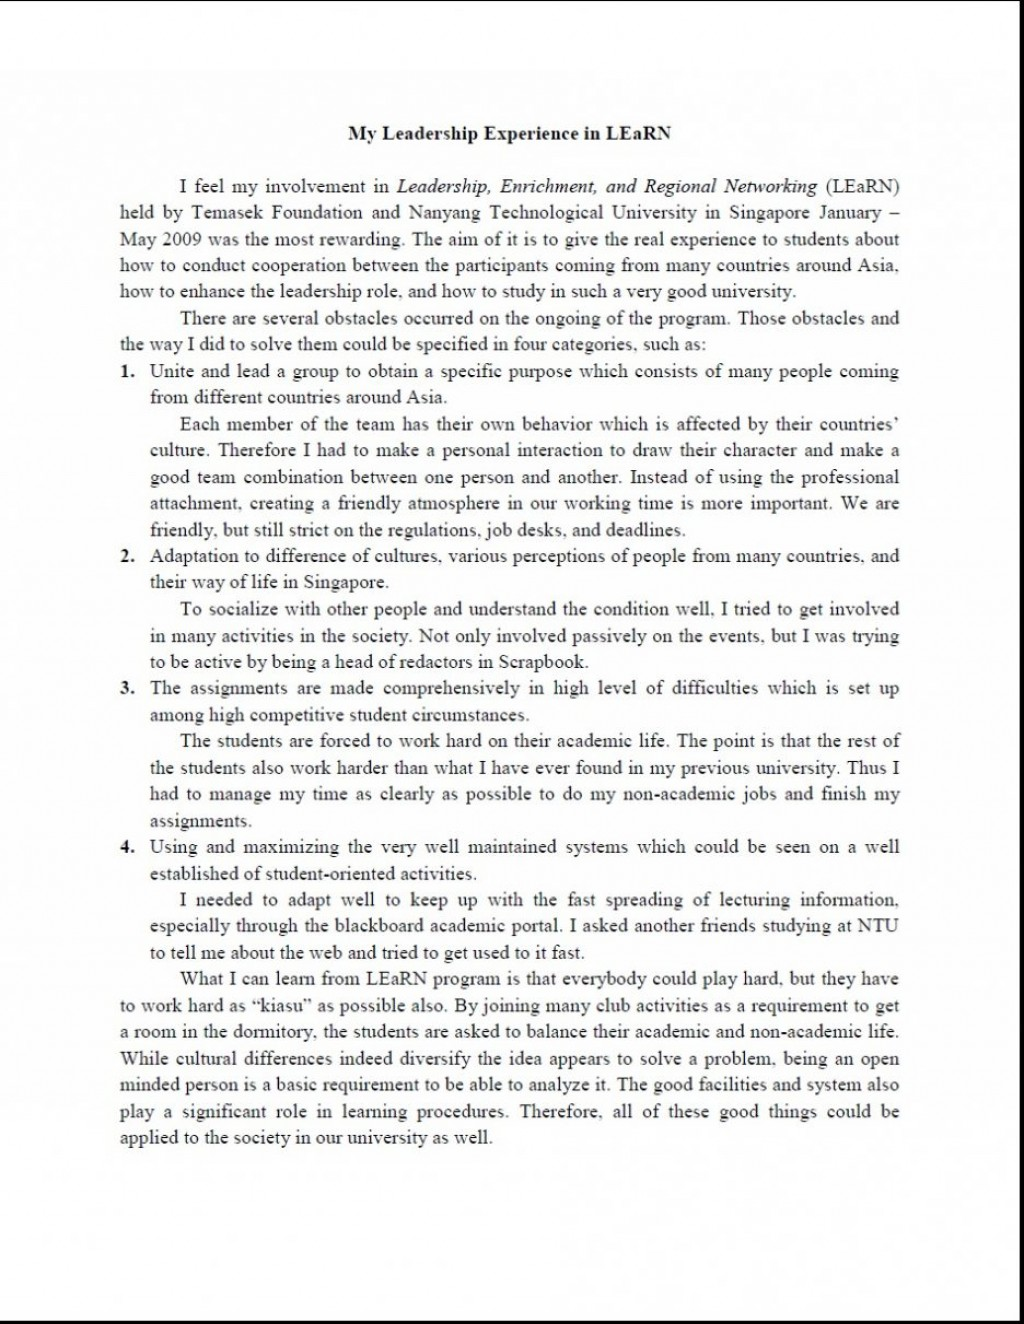 013 Great Leadership Essays Essay Short On Experiences Of Skills Very Sample How To Show Qualities 936x1211 Awesome About Experience Transformational In Hindi Large